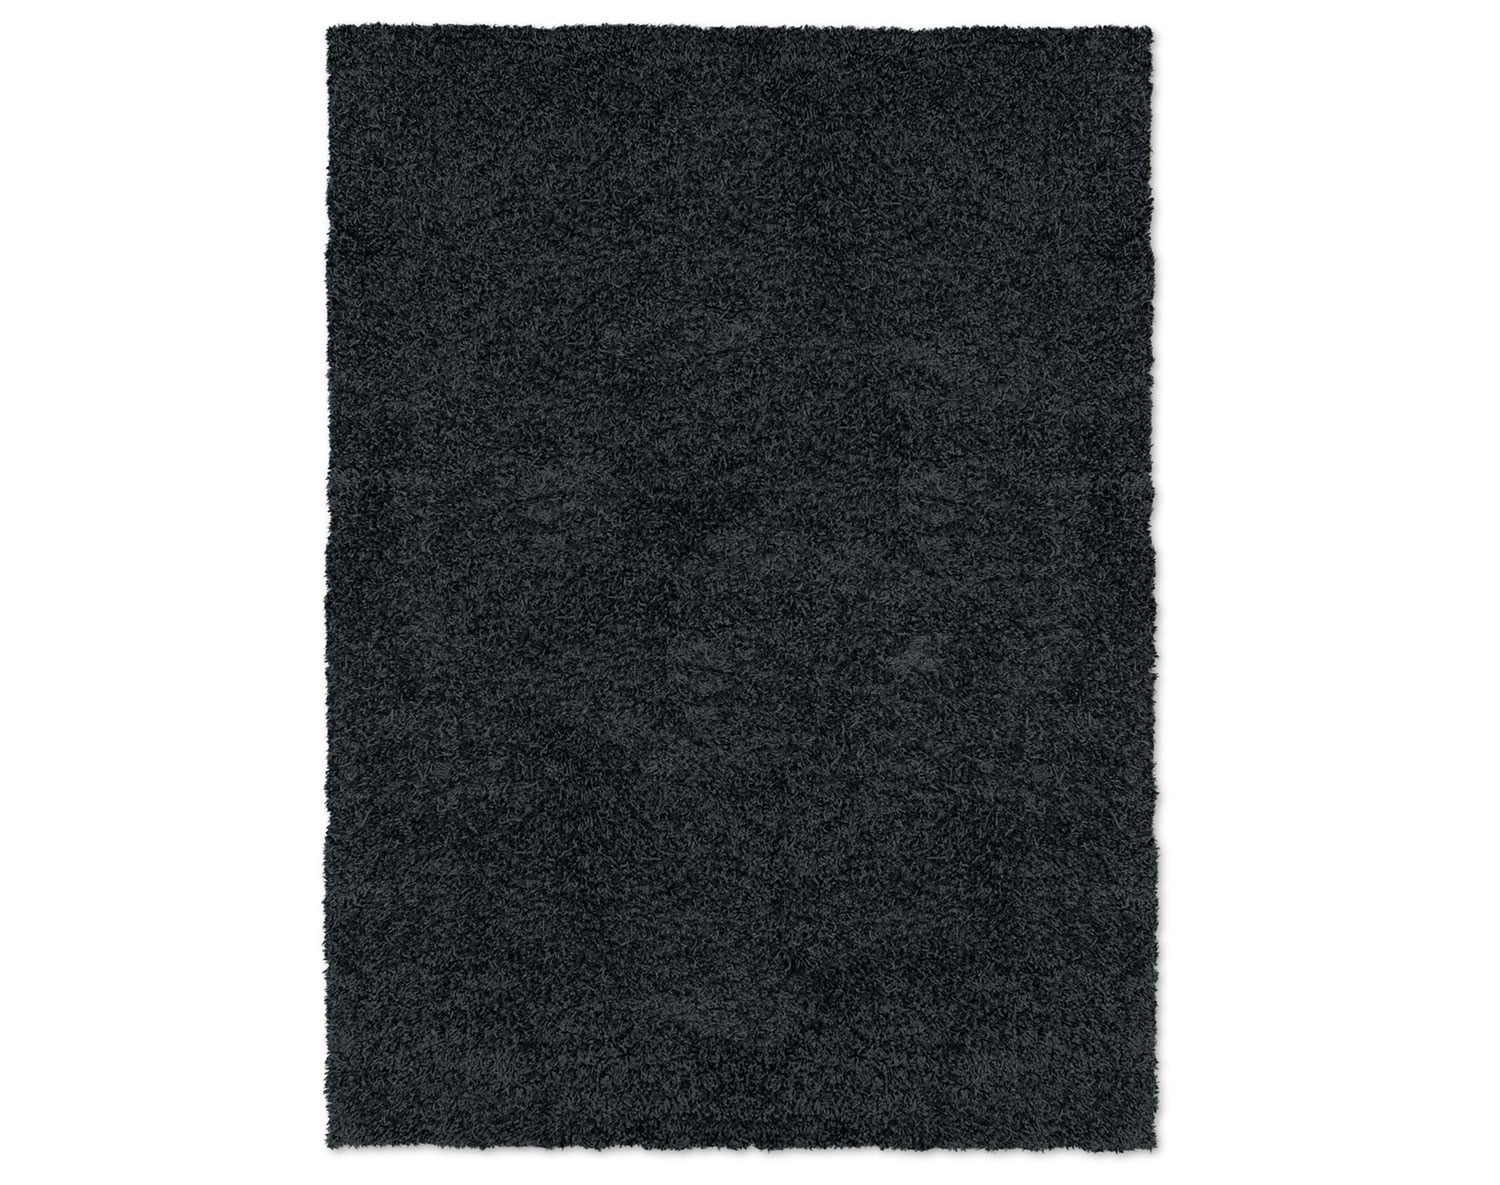 The Domino Black Shag Rug Collection